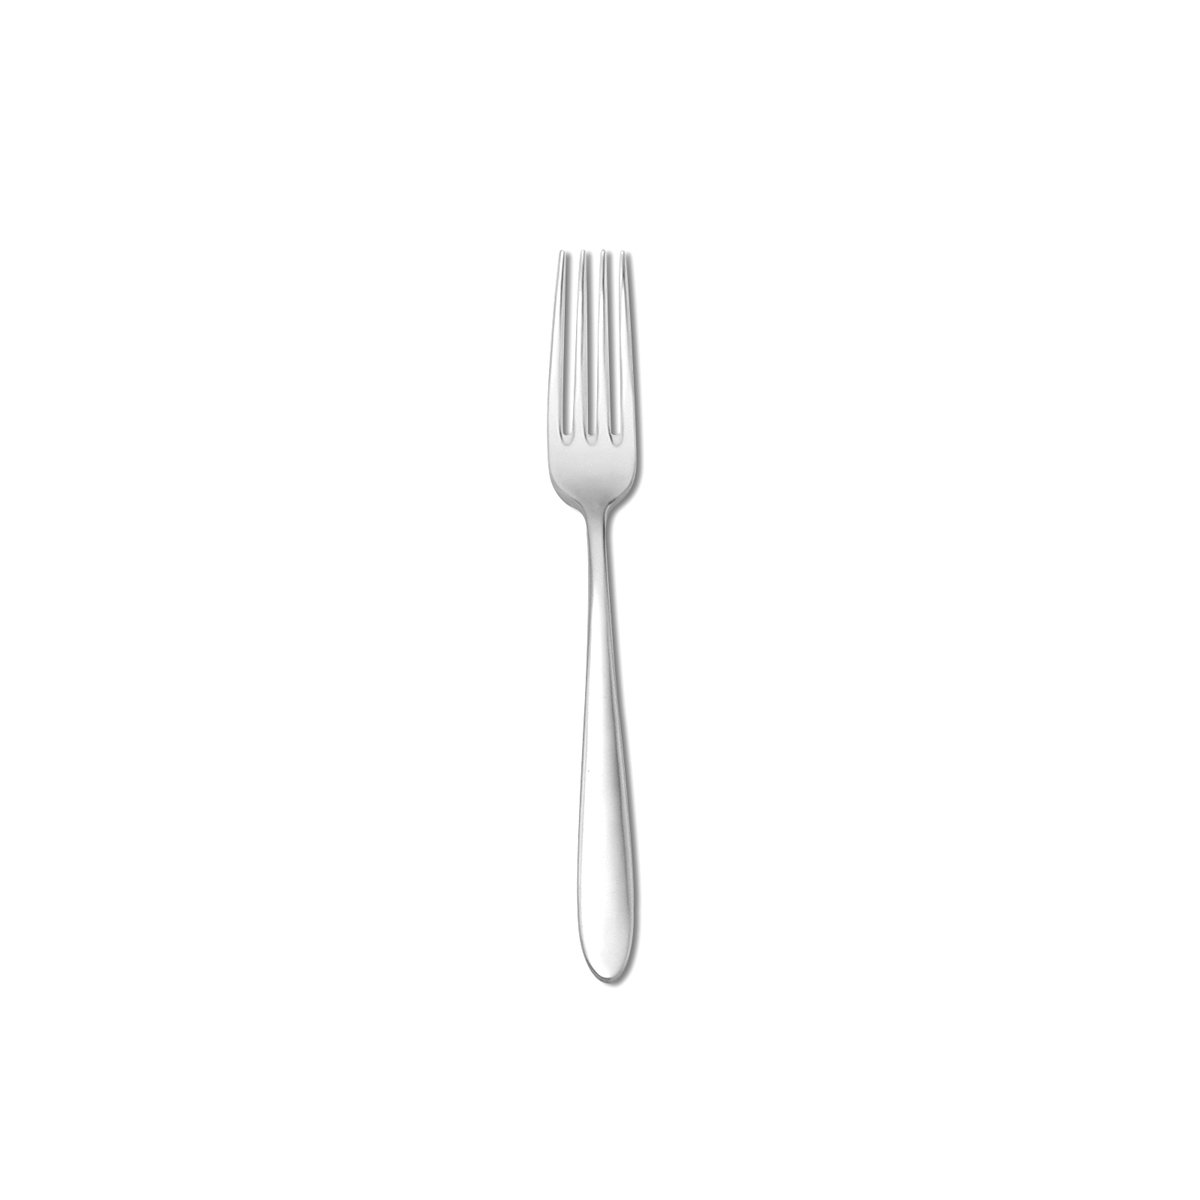 Oneida Foodservice B023SDEF Mascagni II Oval Soup Spoon, 18/0 Stainless Steel, Set of 12